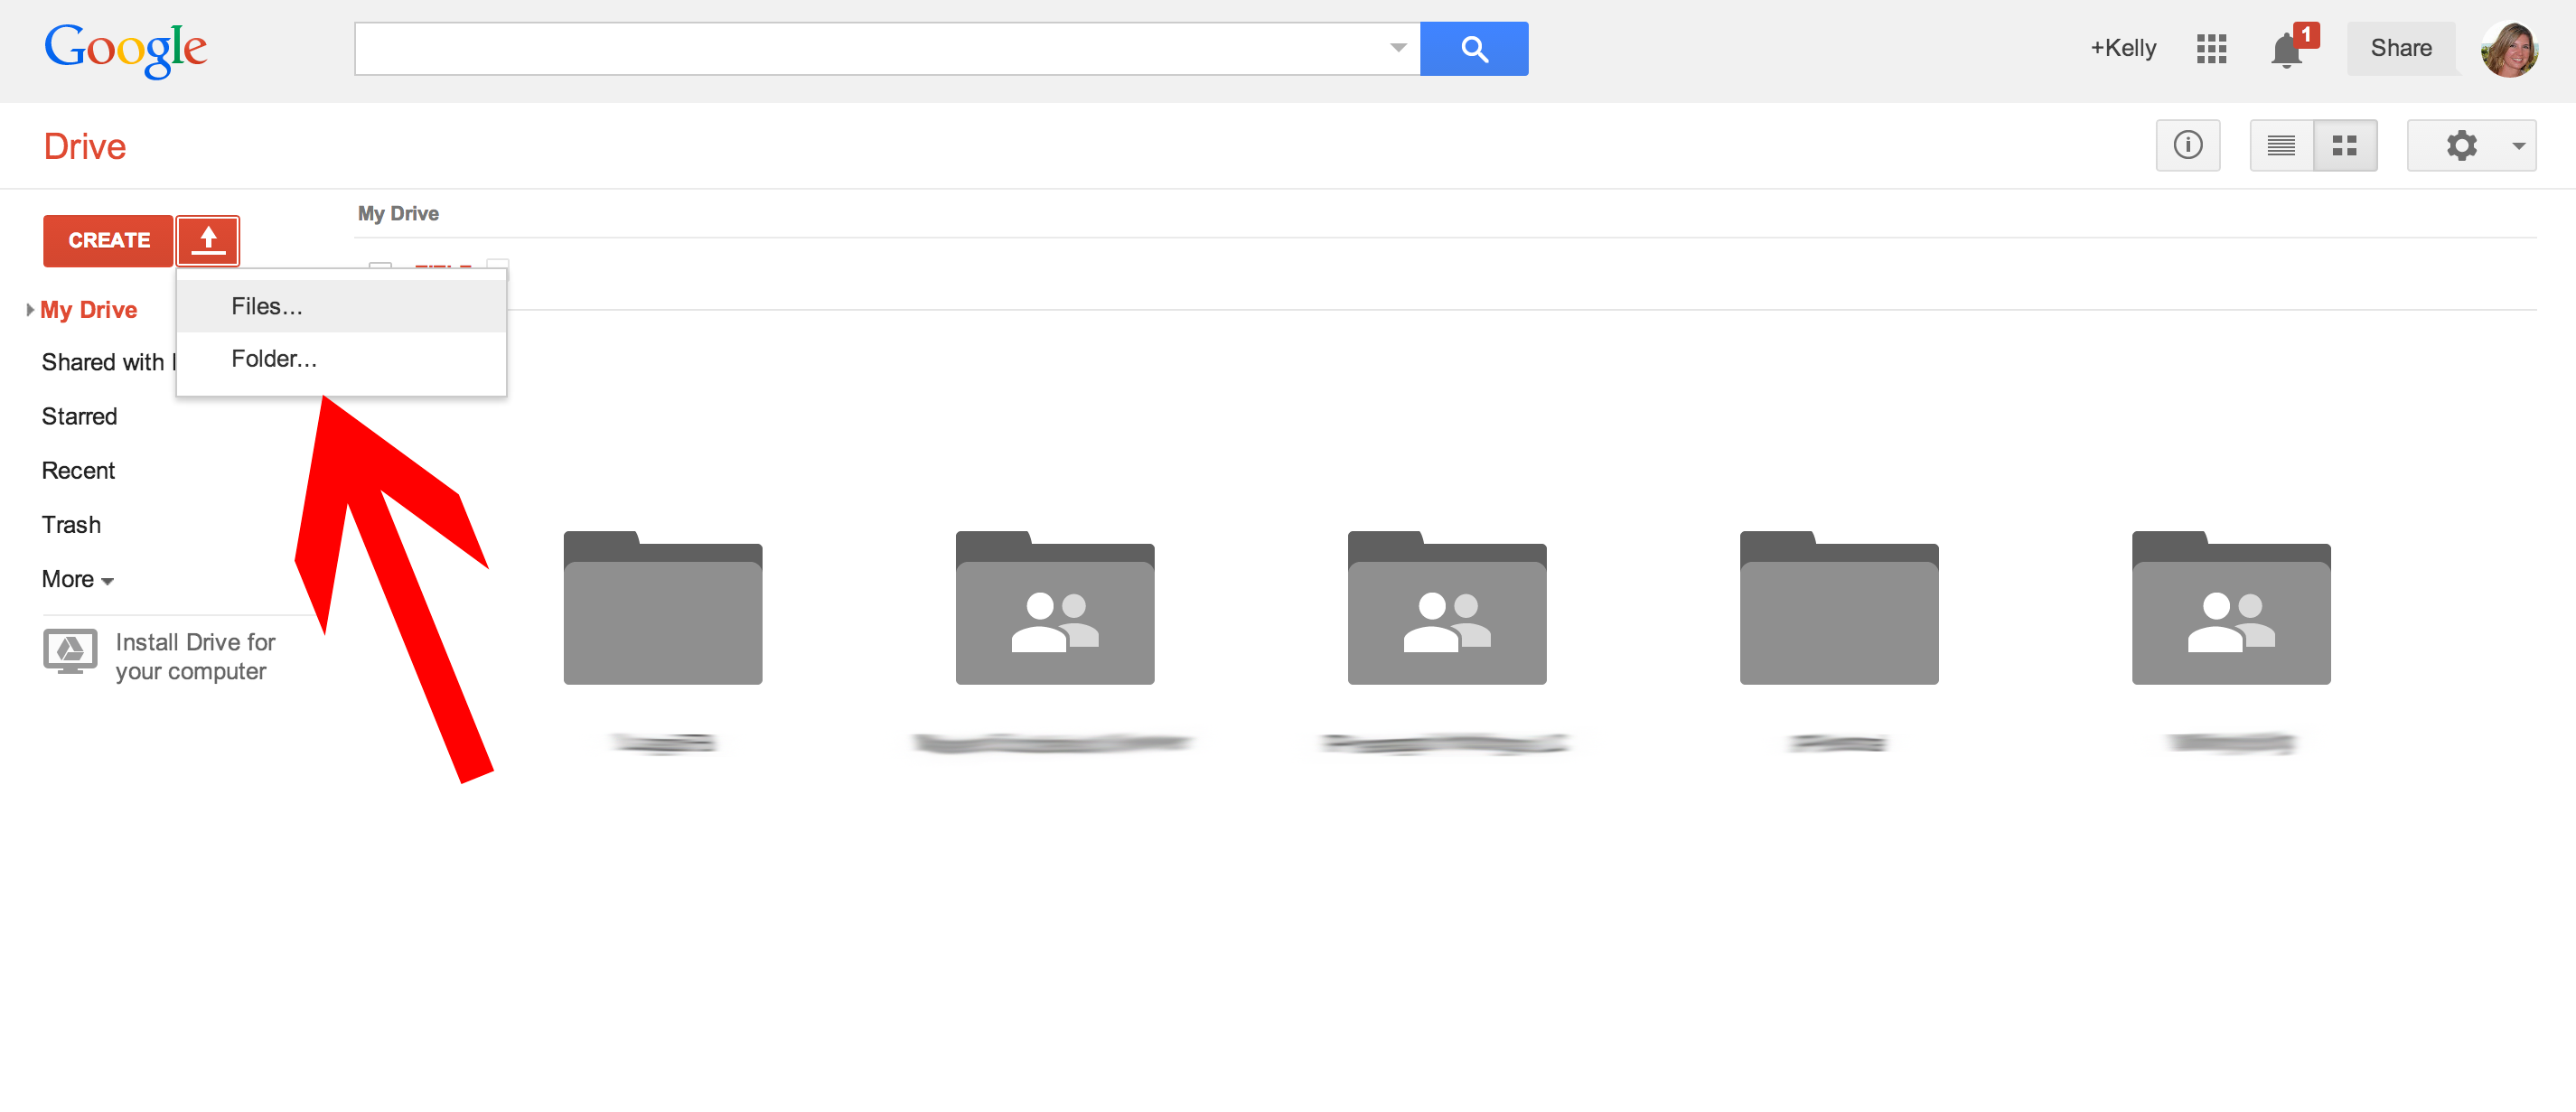 how to know who the google document is shared with